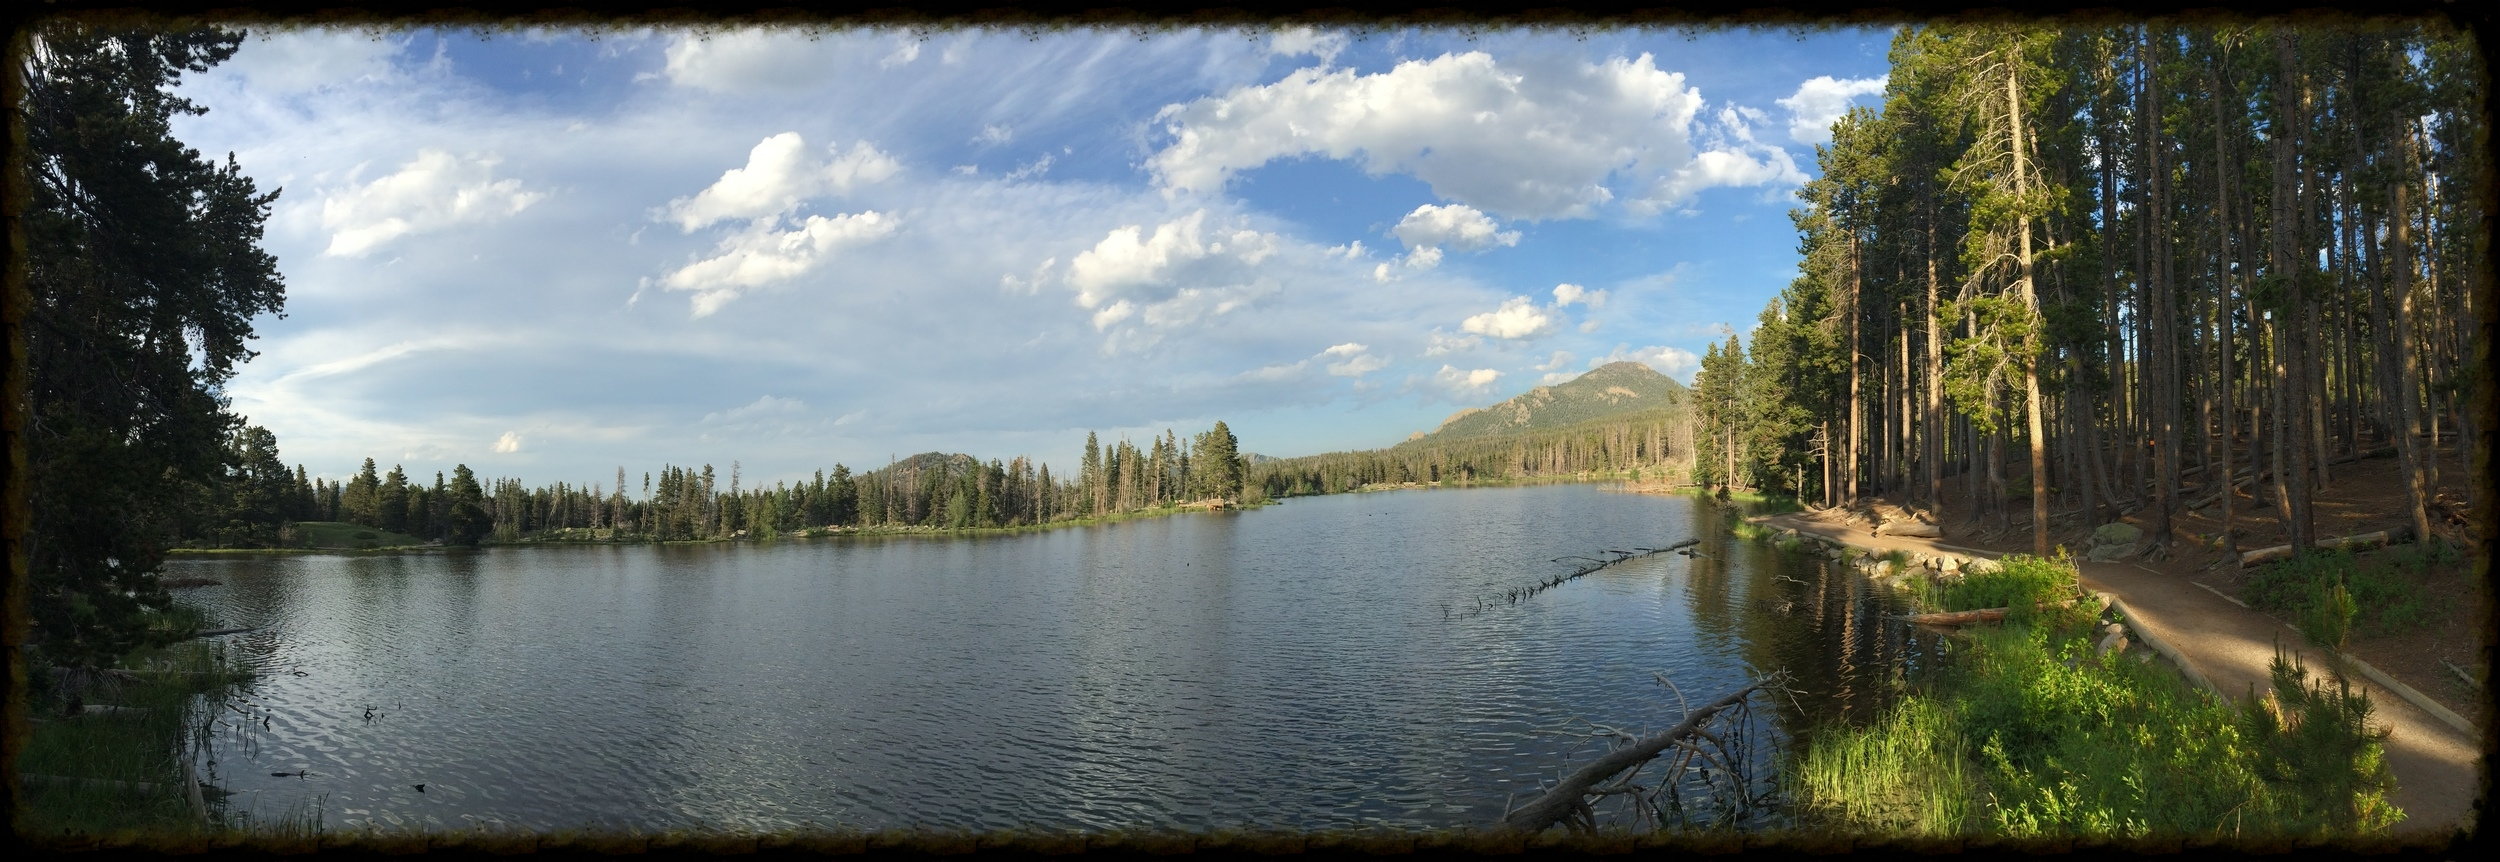 Rocky Mountain National Park's popular Bear Lake is an ideal stop for families.  Photo by Michael Mundt